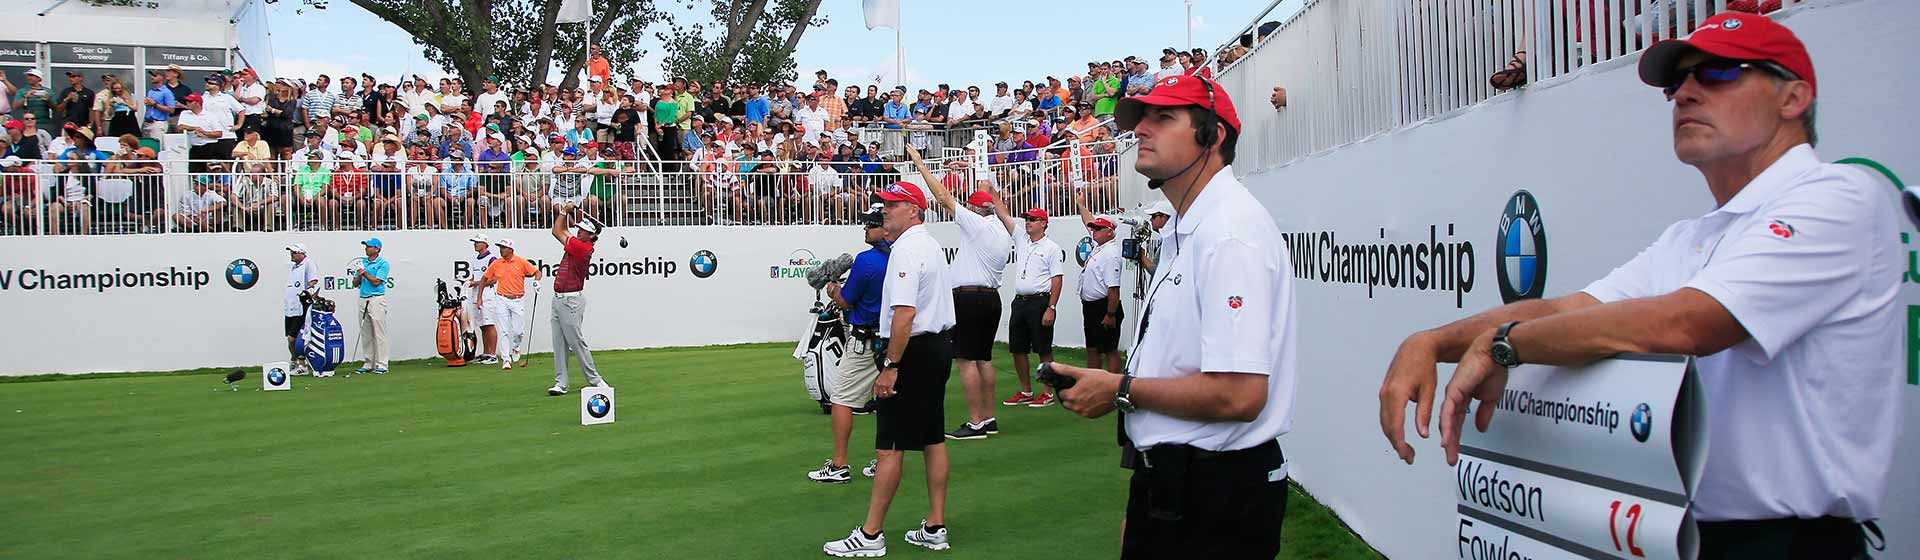 Volunteers | 2016 BMW CHAMPIONSHIP